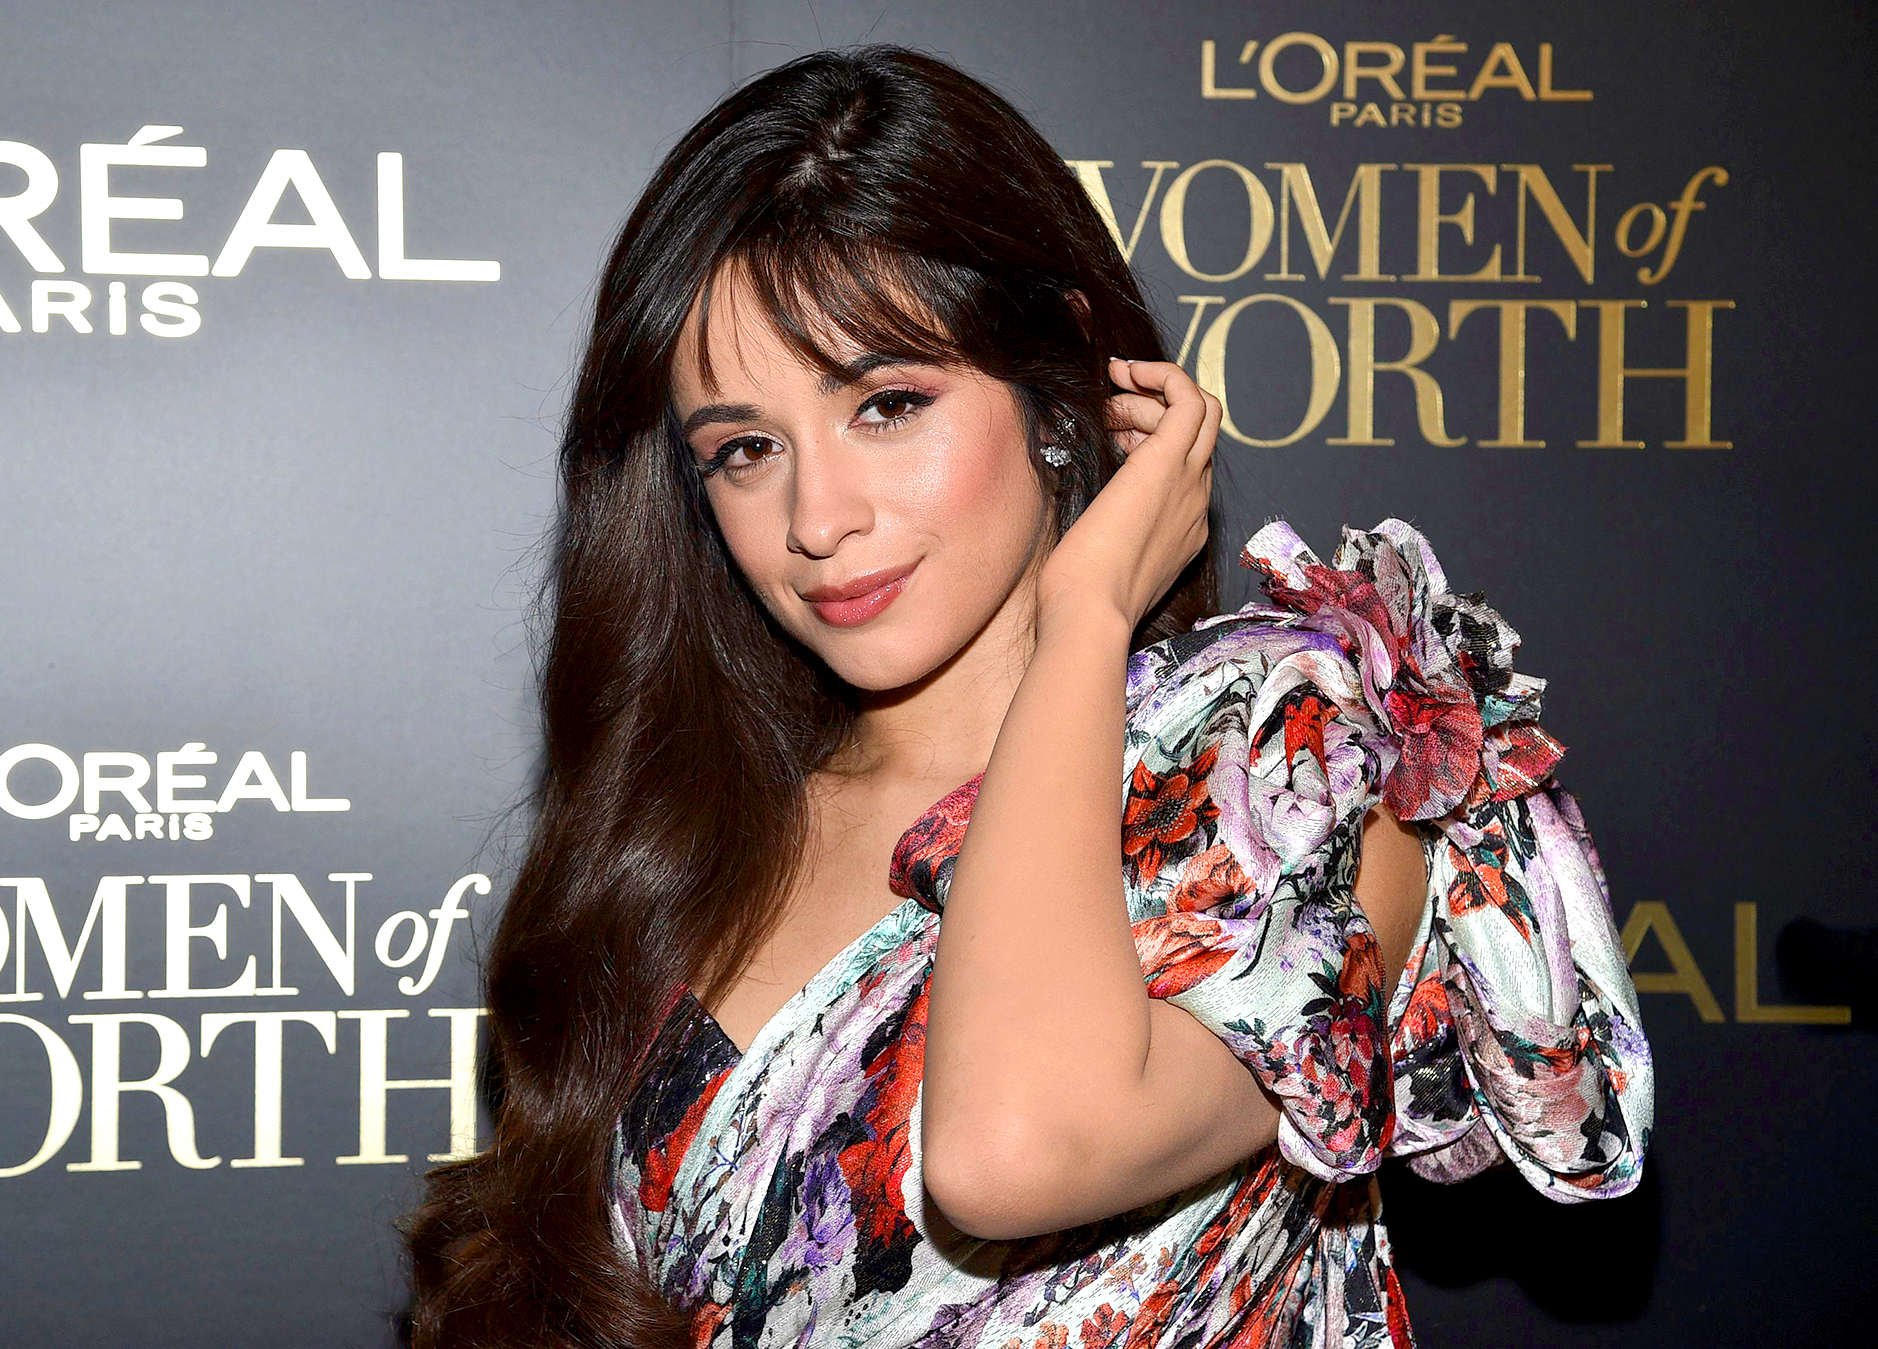 Camila-Cabello-Apologizes-for-Using-Racist-Language-in-the-Past